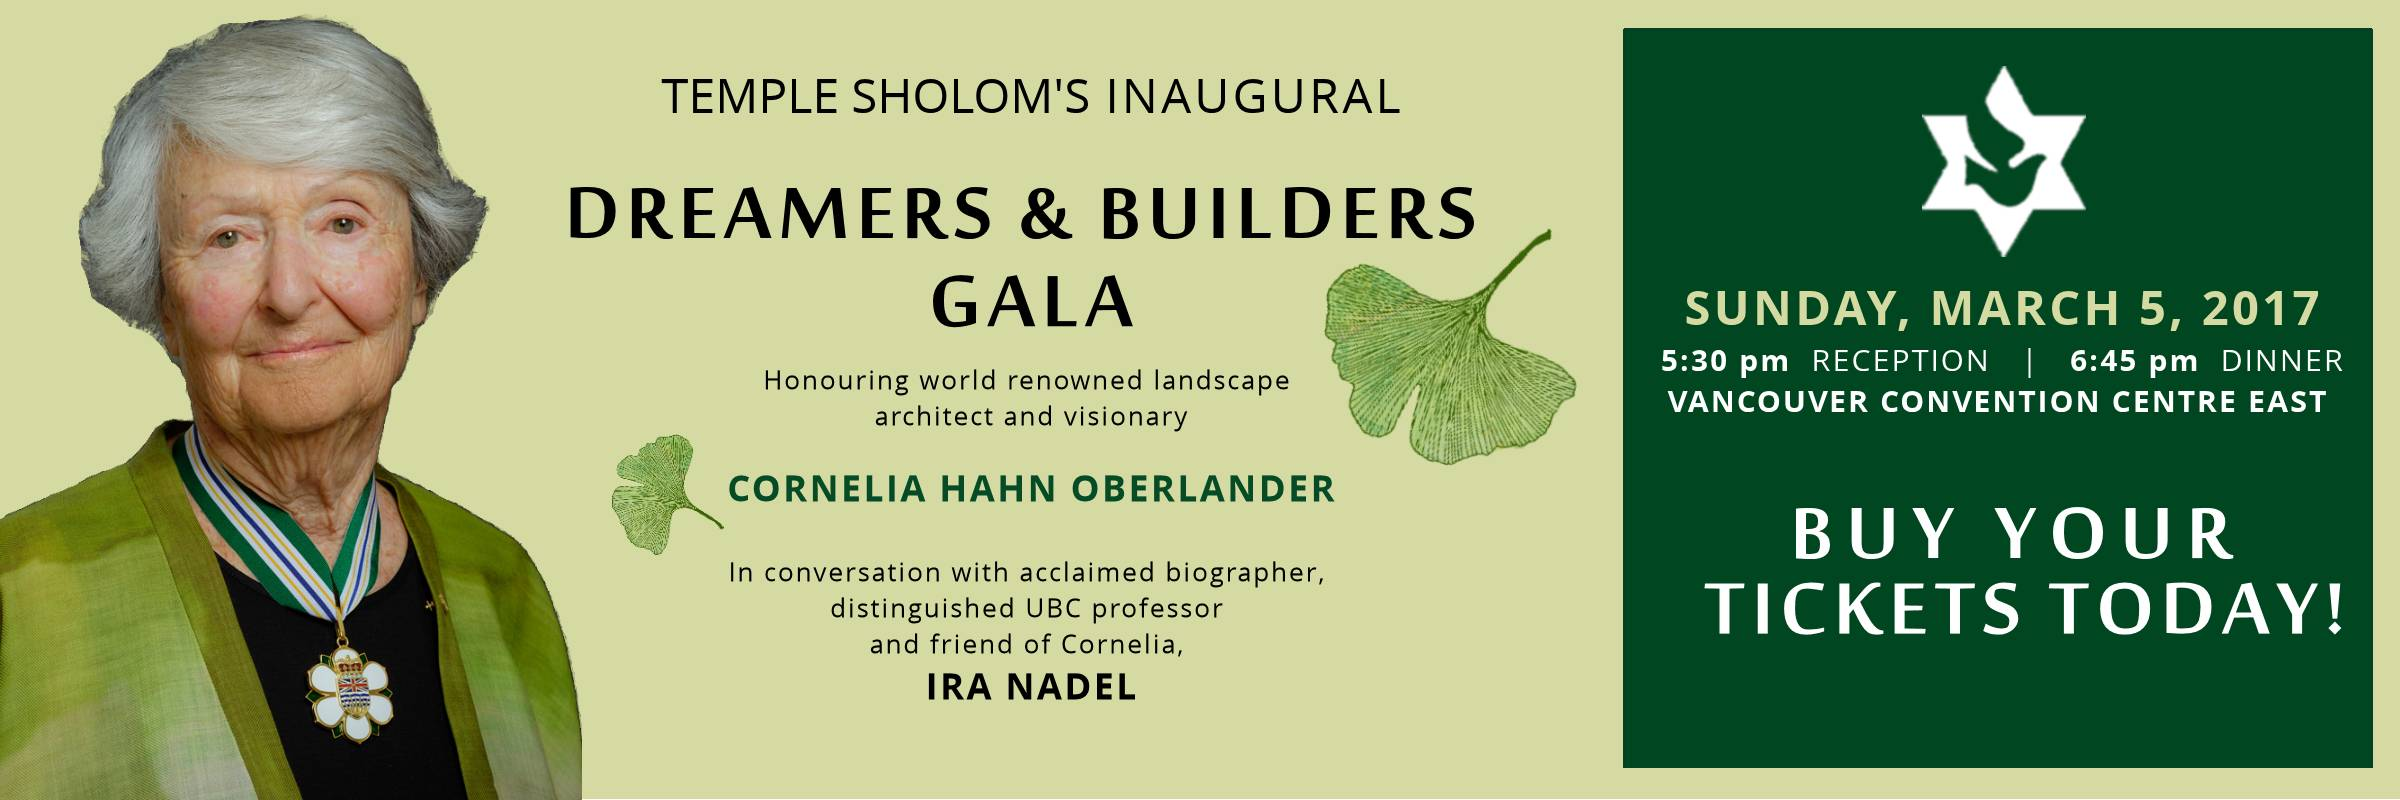 Dreamers and Builders Gala